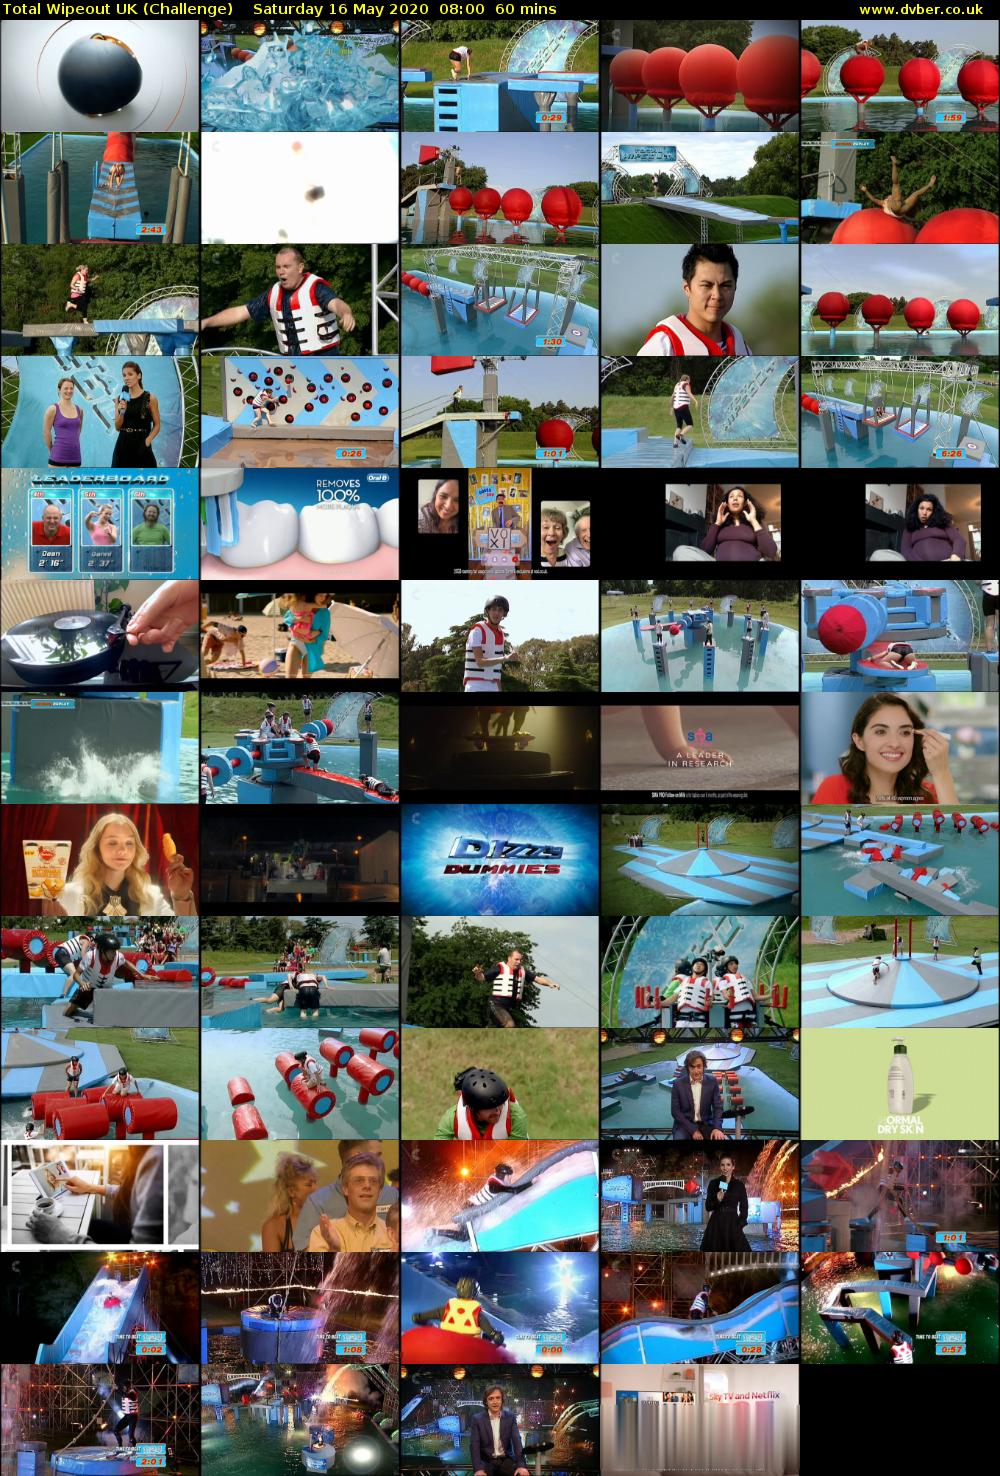 Total Wipeout UK (Challenge) Saturday 16 May 2020 08:00 - 09:00